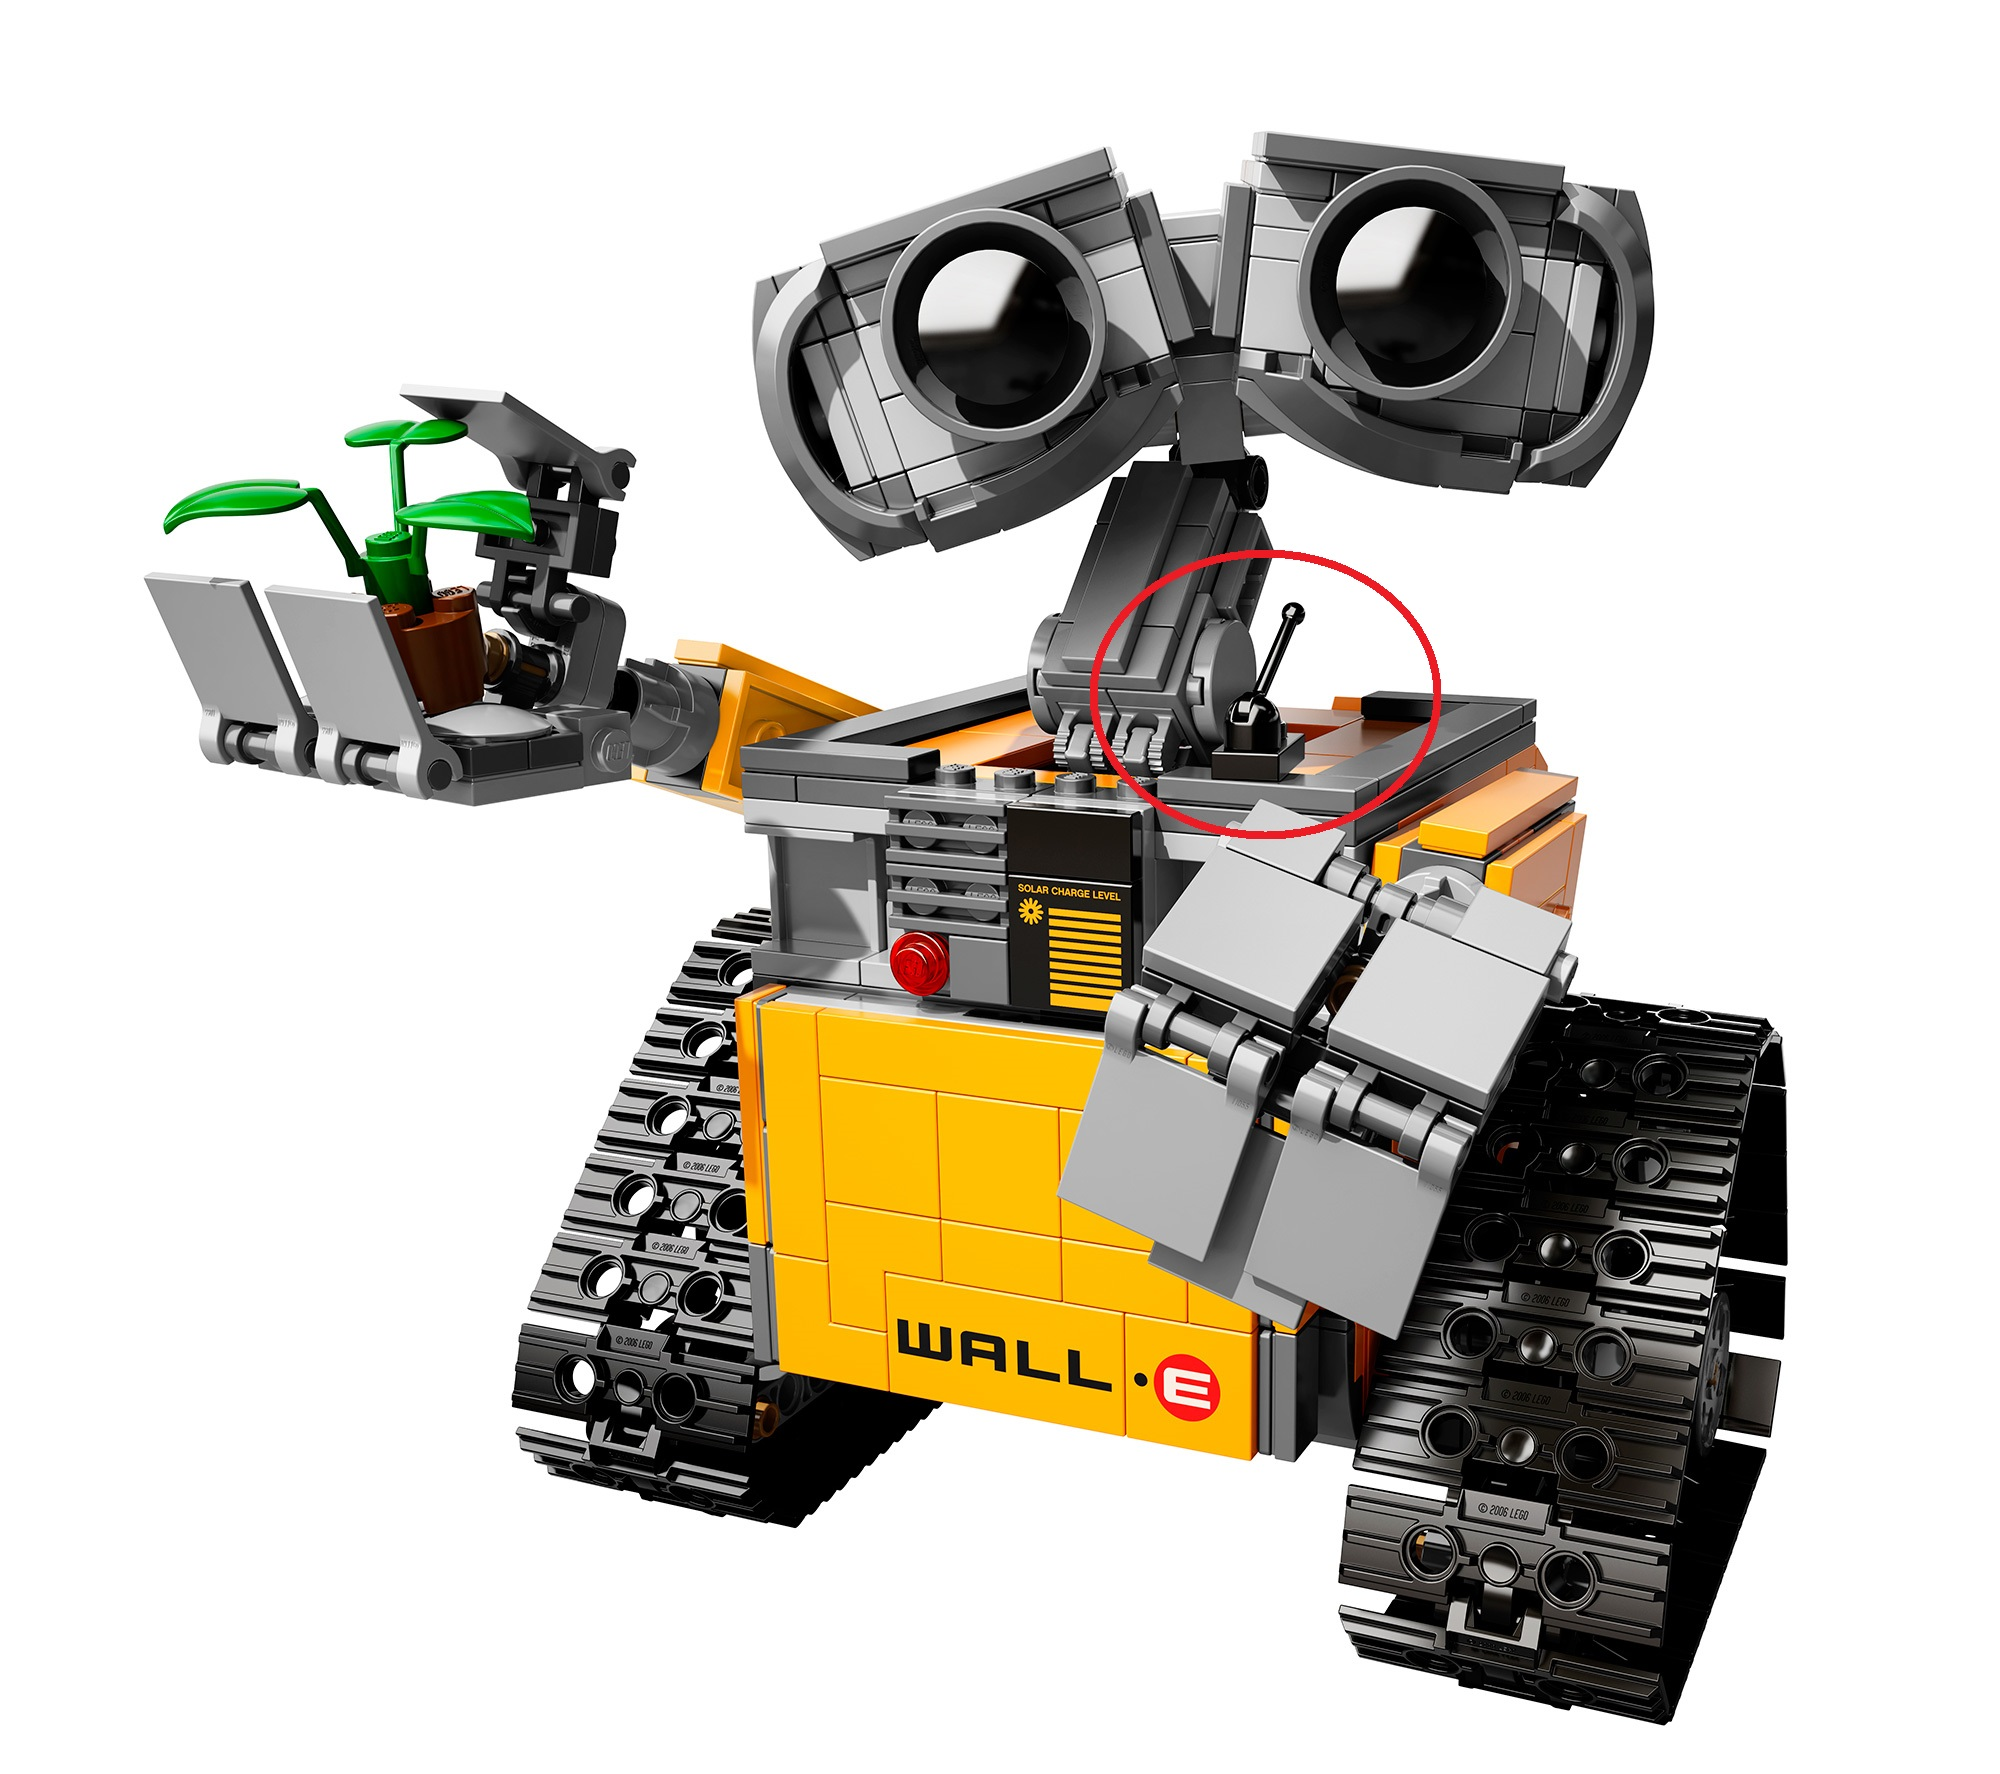 toy plane drawings with First Official Photos Lego Ideas 21303 Wall E on Page104 furthermore Illustration Stock Vaisseau Spatial De Soucoupe Volante Image64045839 together with Douglas Dc 6 likewise First Official Photos Lego Ideas 21303 Wall E in addition Details.